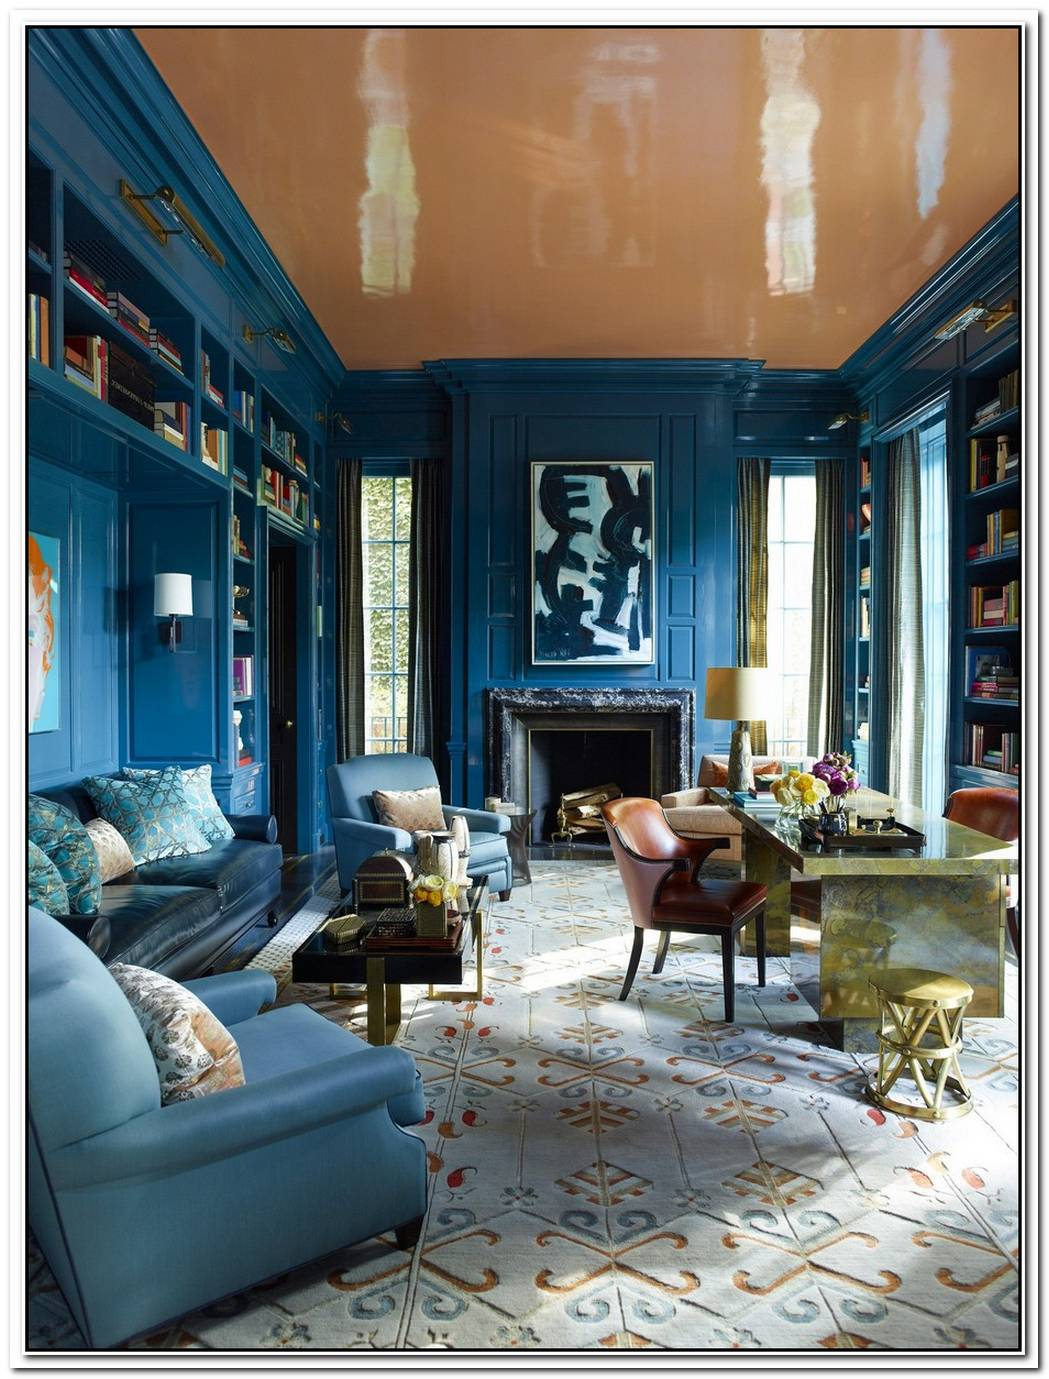 Colorful And Inviting Interior Design Samples From Steven Gambrel